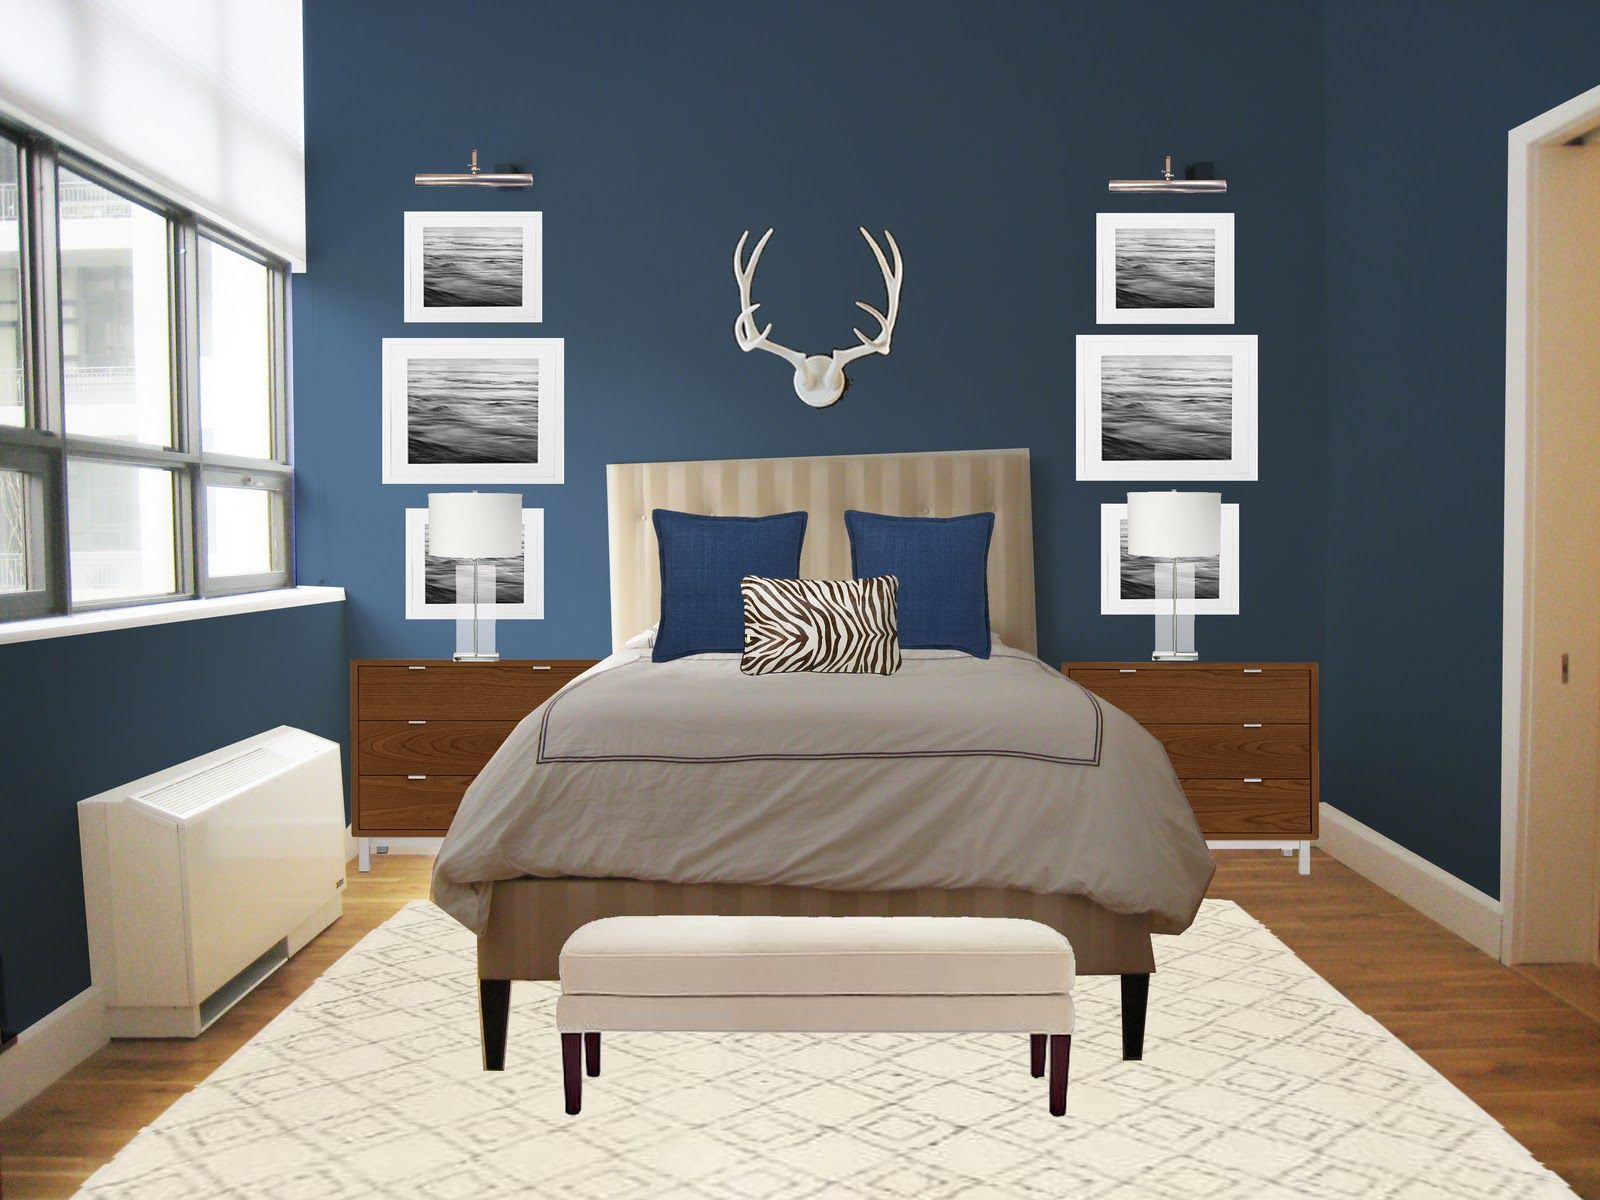 Modern bedroom paint color - Behr Paint Ideas For Bedroom Bedroom Paint Colors 1600x1200 One Brooklyn Modern Paint Colors Chosen